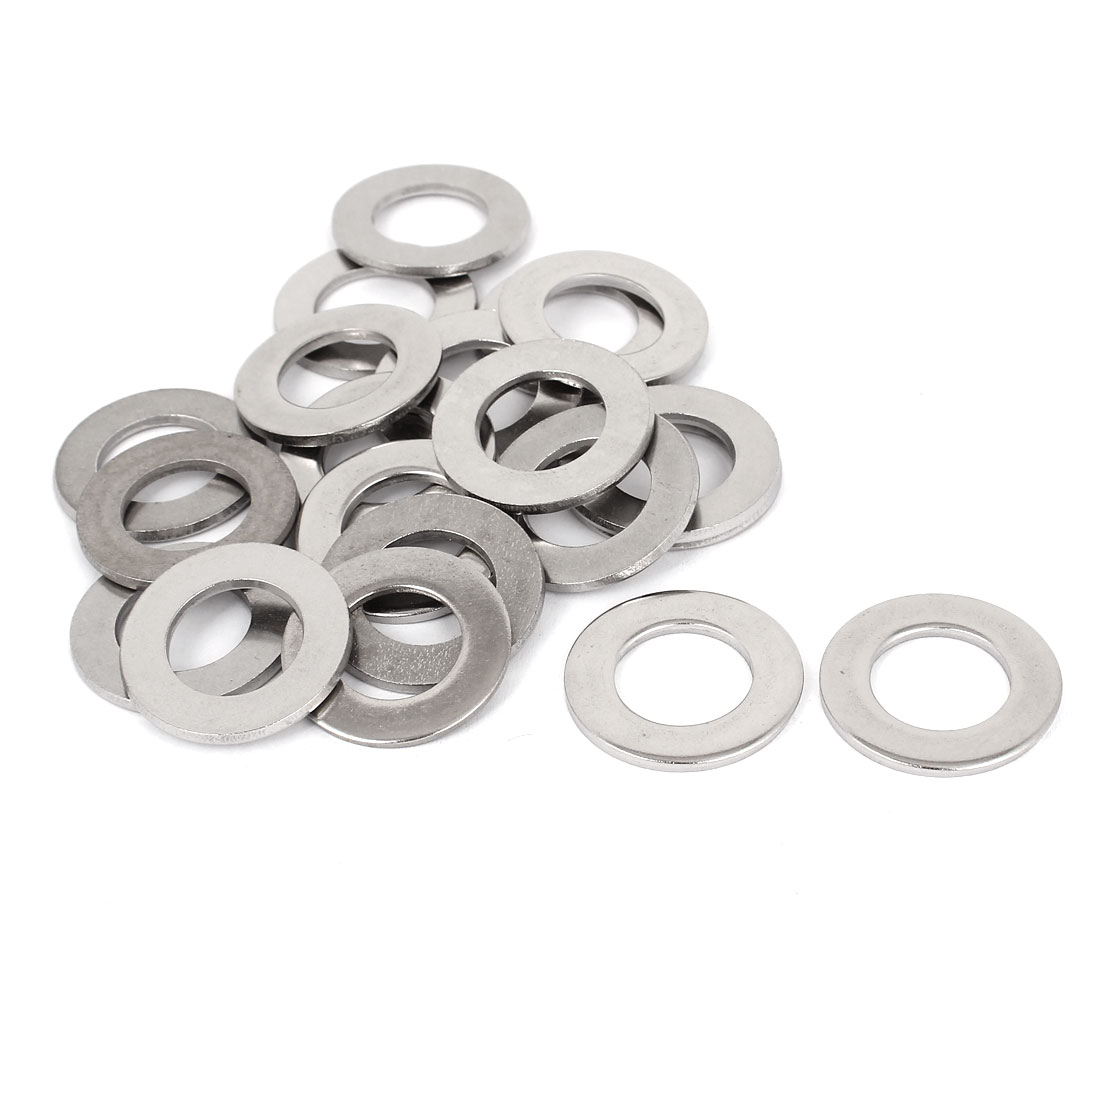 """20pcs Silver Tone 316 Stainless Steel Flat Washer 3/4"""" for Screws Bolts"""